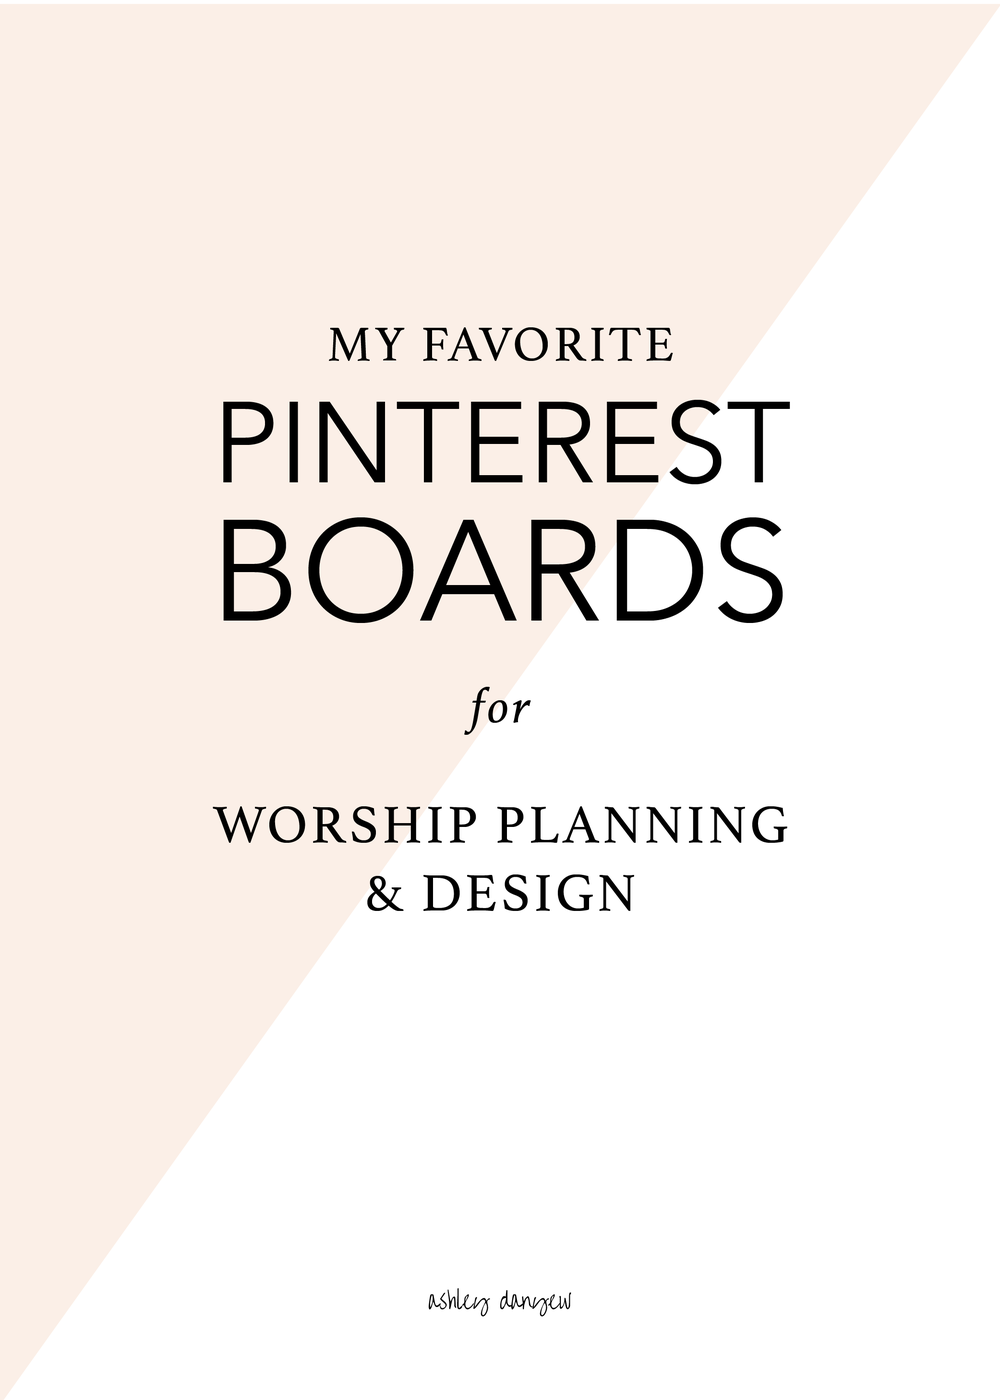 Copy of My Favorite Pinterest Boards for Worship Planning & Design